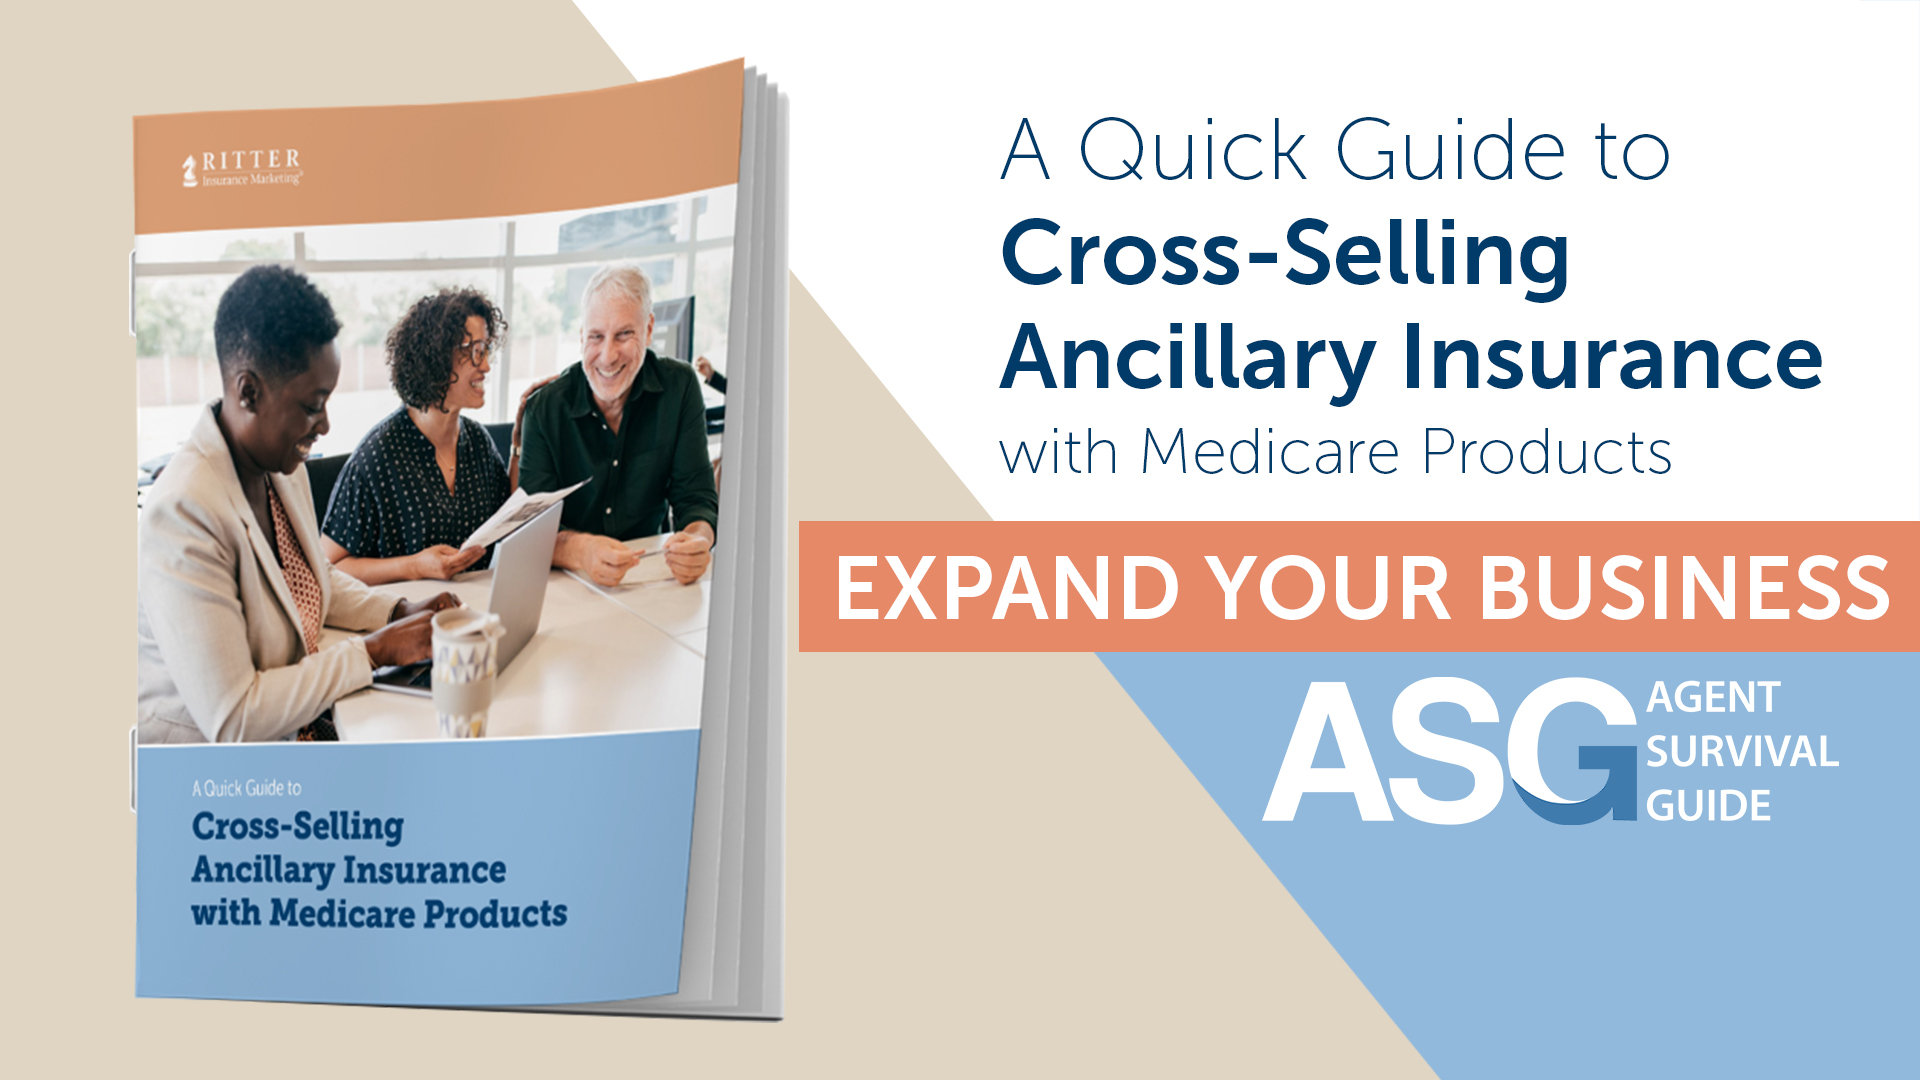 A Quick Guide to Cross-Selling Ancillary Insurance with Medicare Products Trailer